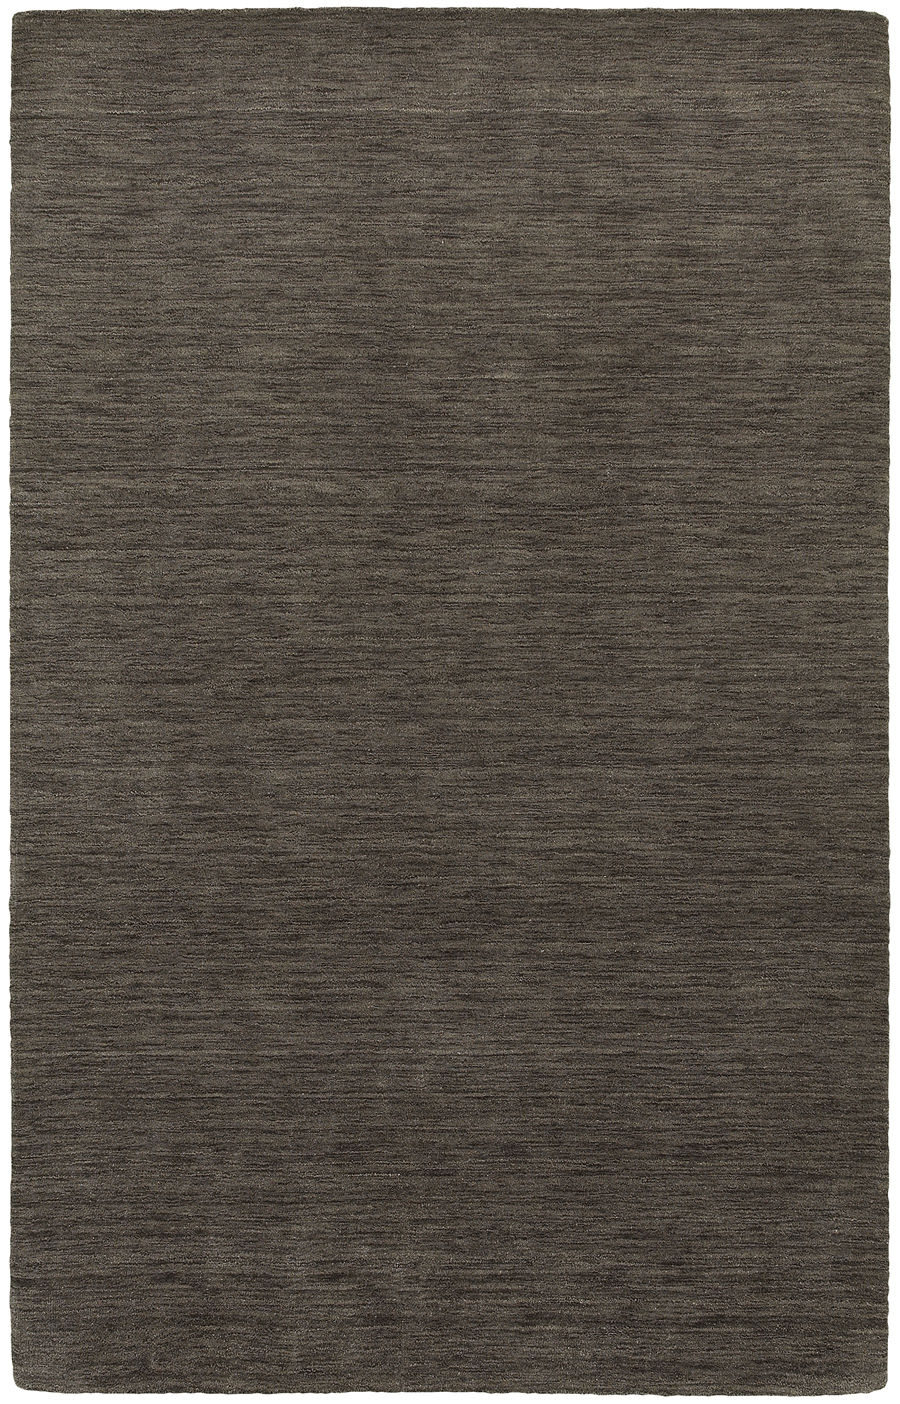 Oriental Weavers Sphinx Aniston 27102 Rug